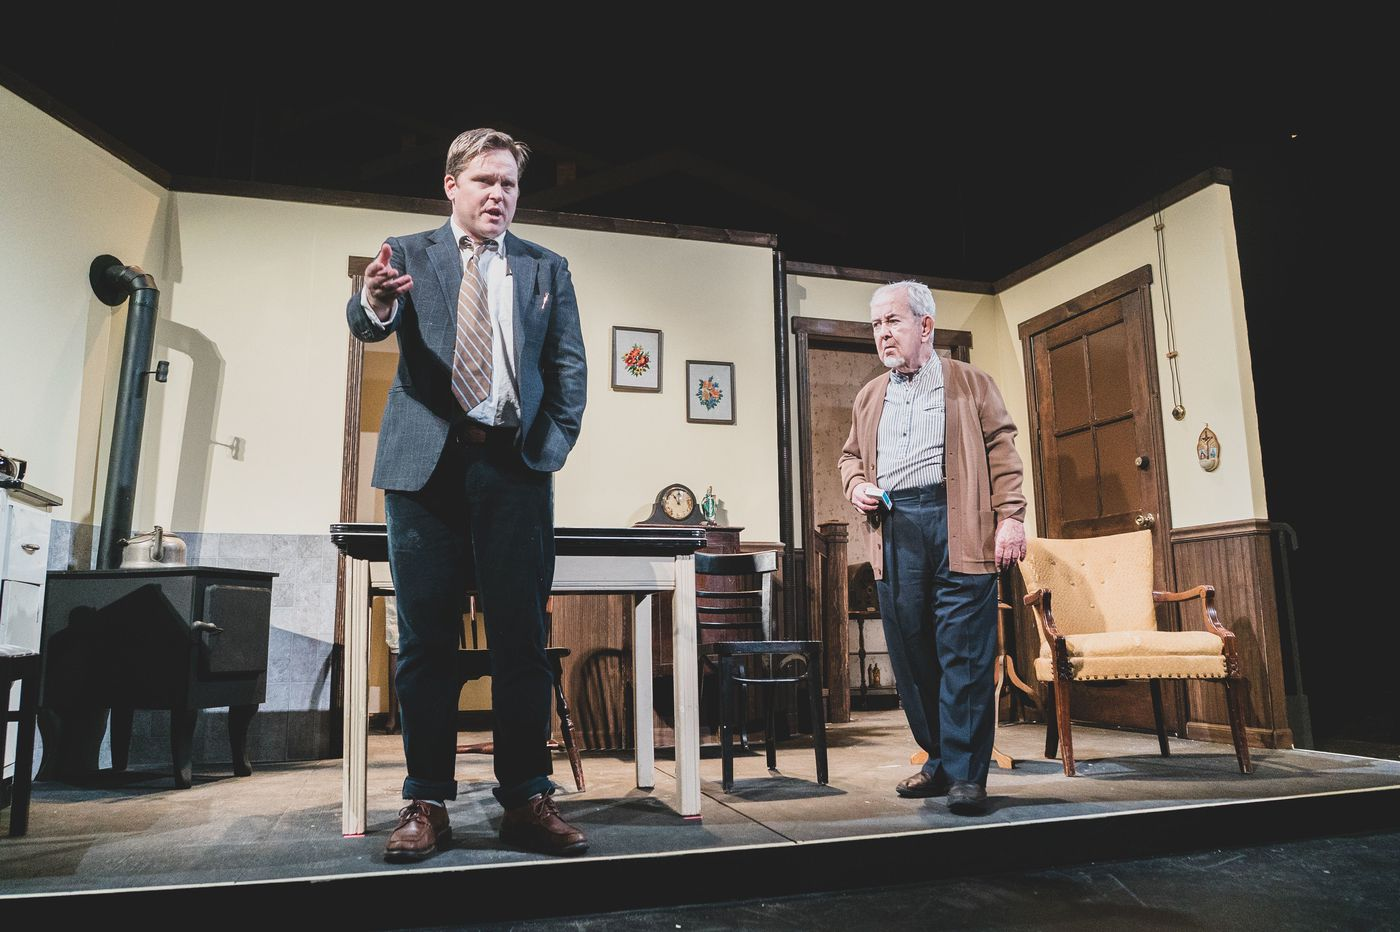 'Da' at Irish Heritage Theatre: A happy balance of blarney and heart onstage at Plays & Players